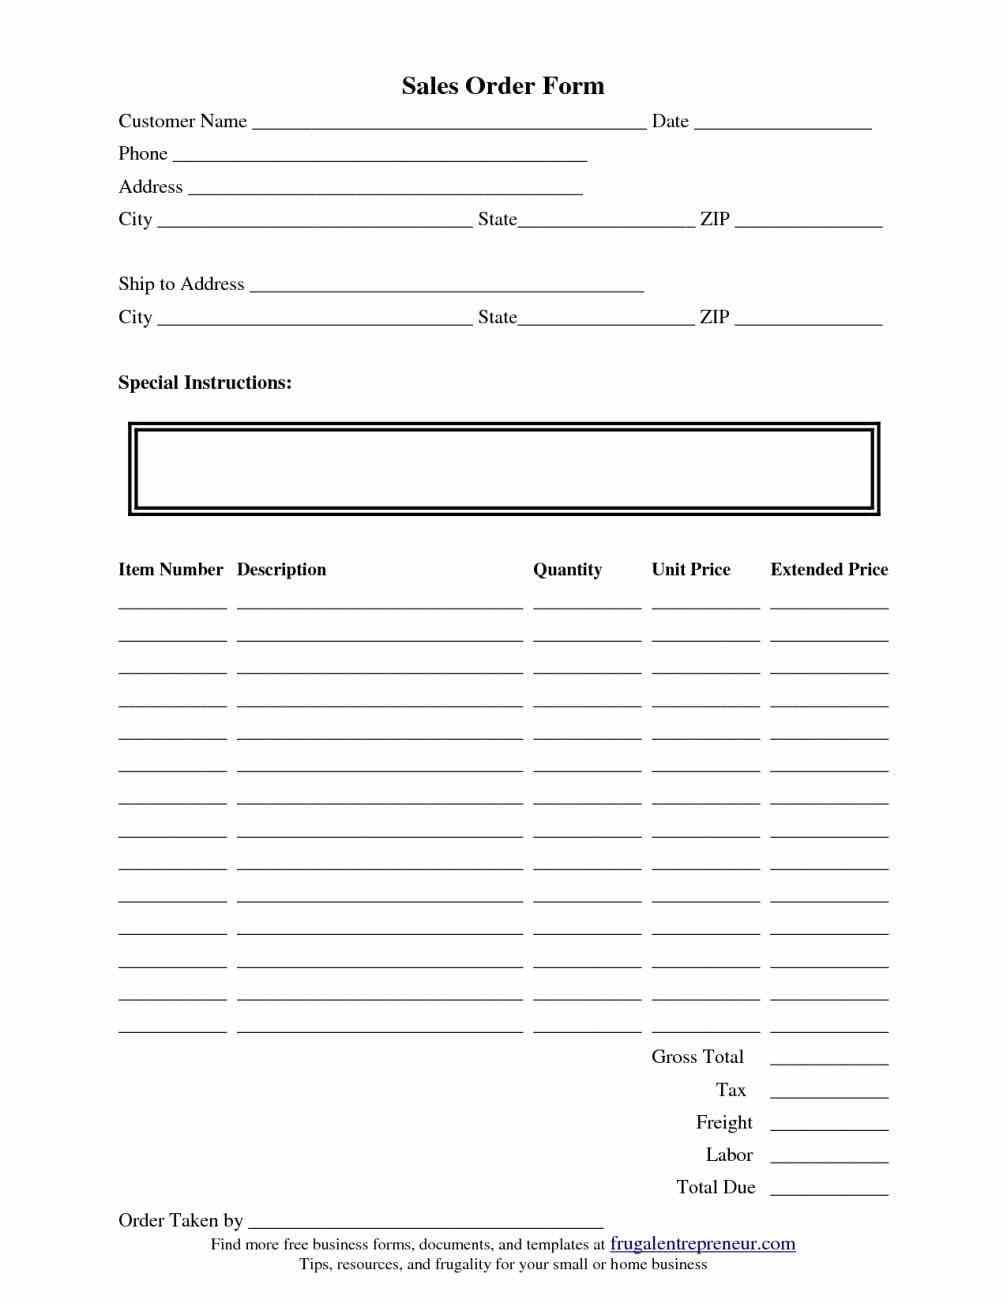 Need Templates For Order Forms An Efficient Way To Collect Orders